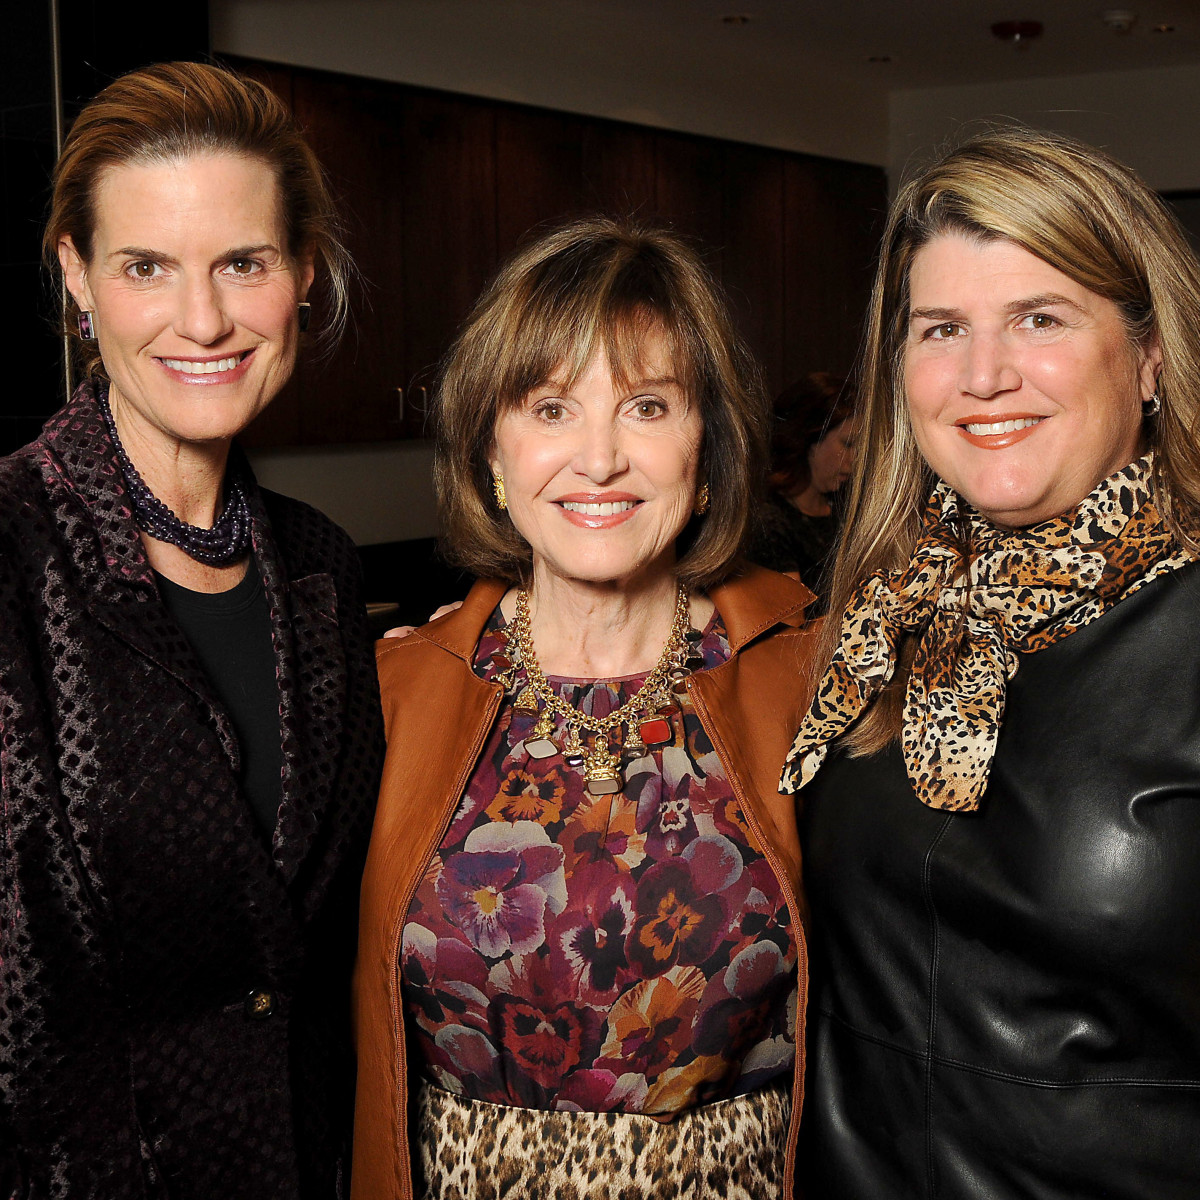 HGO Ladies Lunch Emily VanHouten, Donna Josey Chapman and Donna Kurka